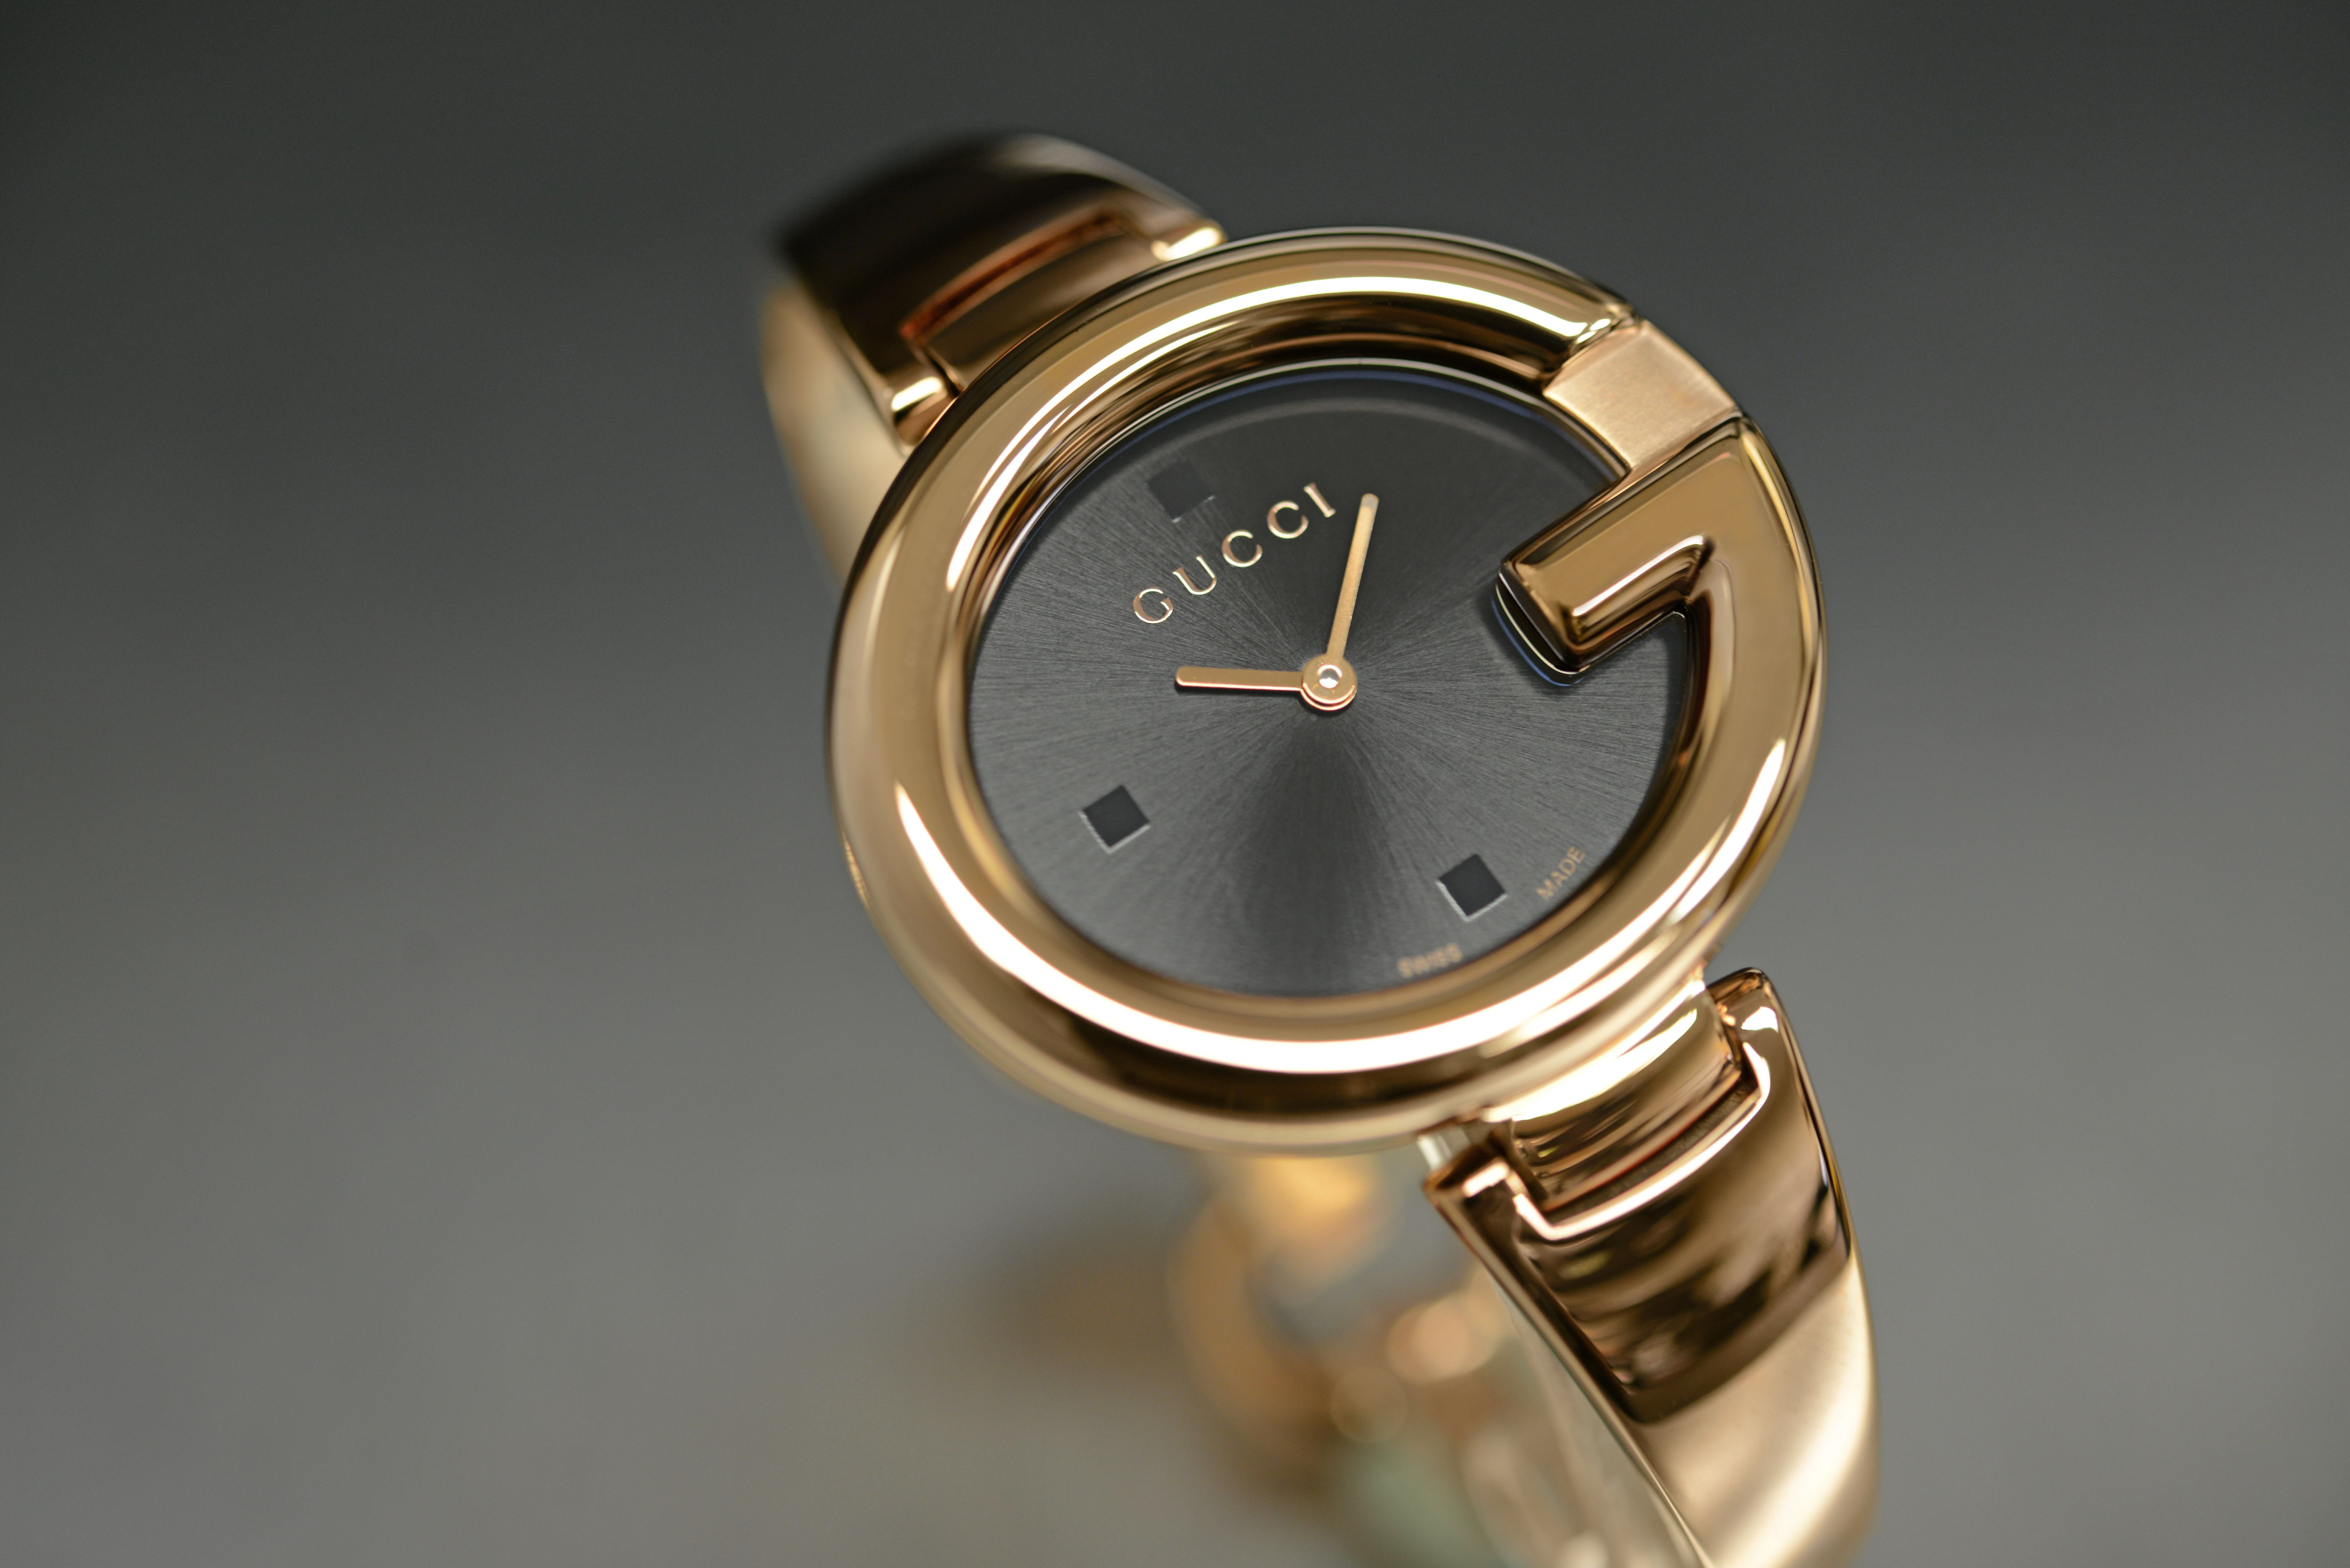 251e1bc6a6a View our collection of Women s  Gucci Watches at Chronostore.com and enter  our  Giveaway below while there s still time